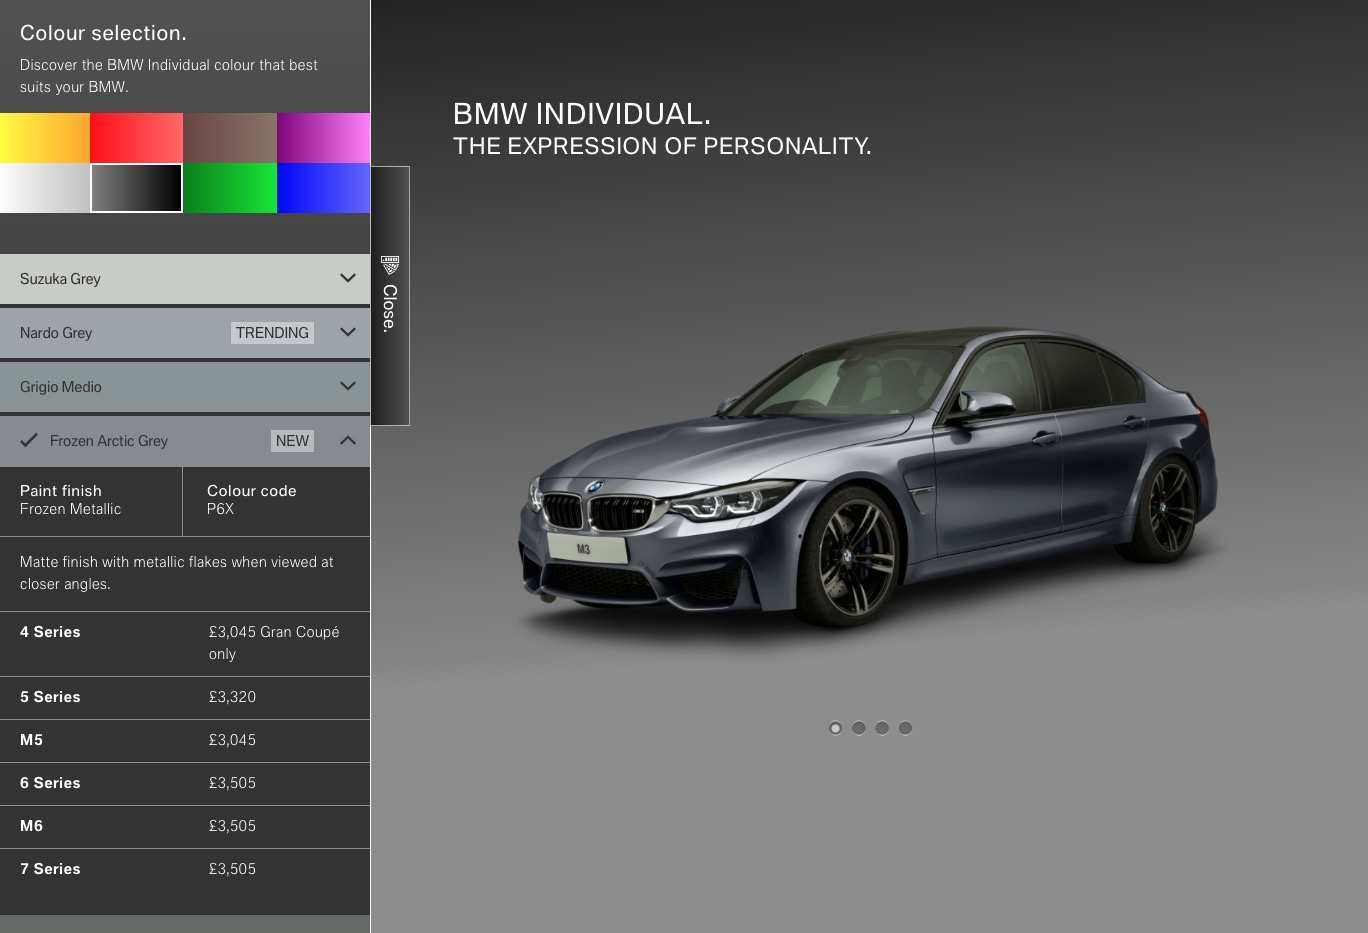 28 New 2020 BMW M4 Colors Release Date